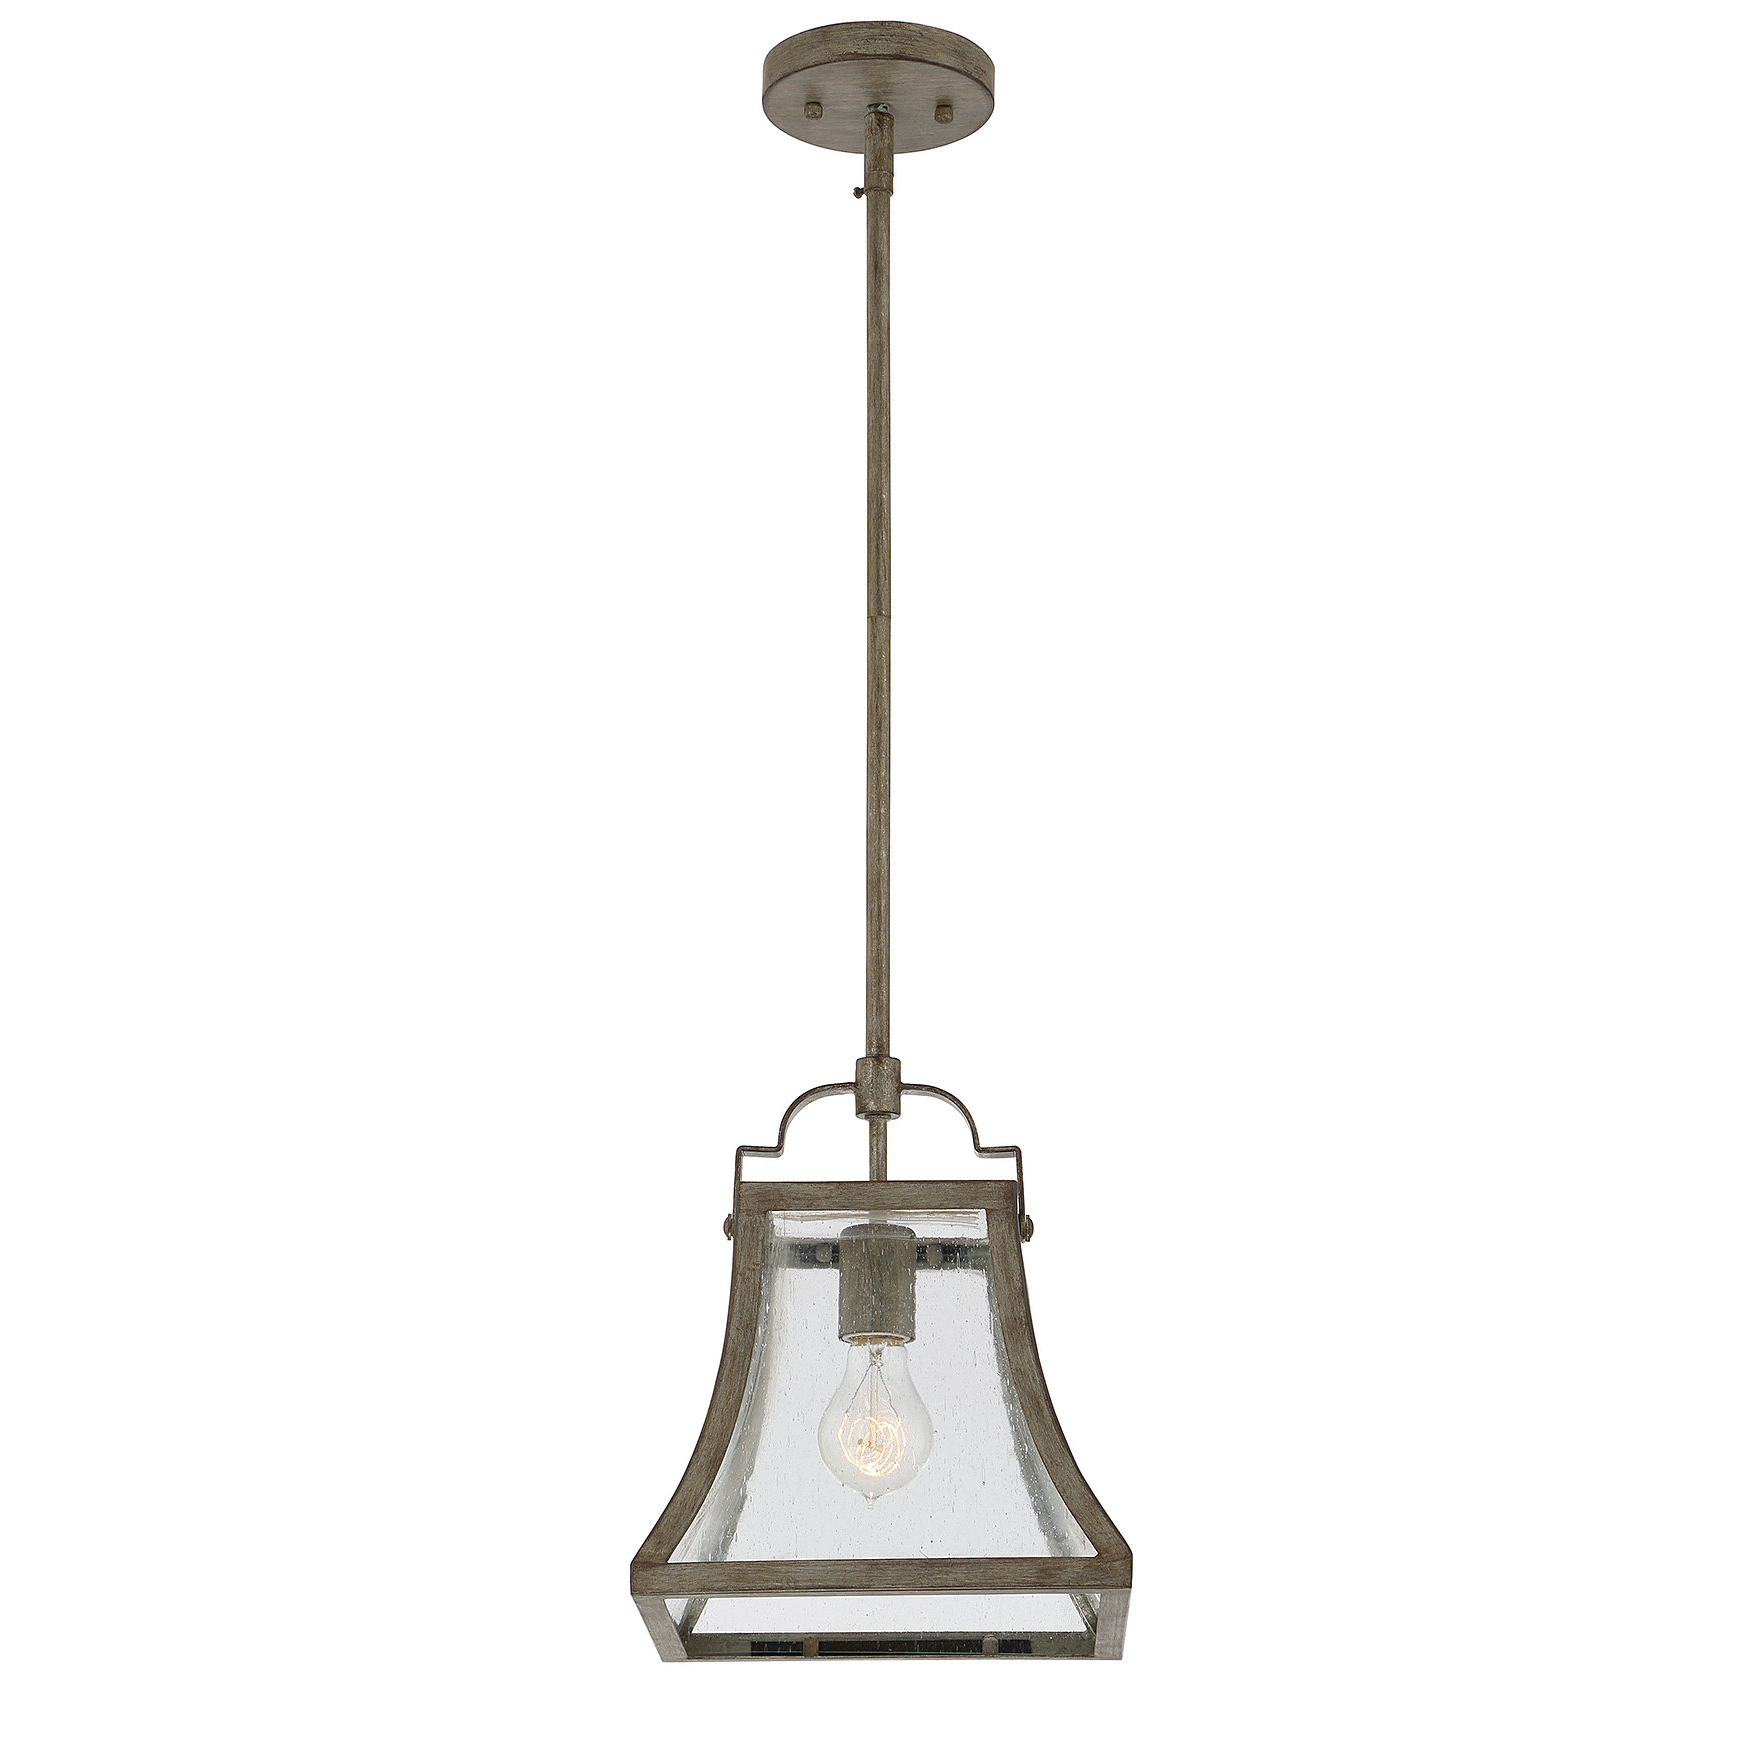 Laurel Foundry Modern Farmhouse Montvert 1 Light Lantern Geometric Pendant For Newest Louanne 1 Light Lantern Geometric Pendants (View 16 of 25)